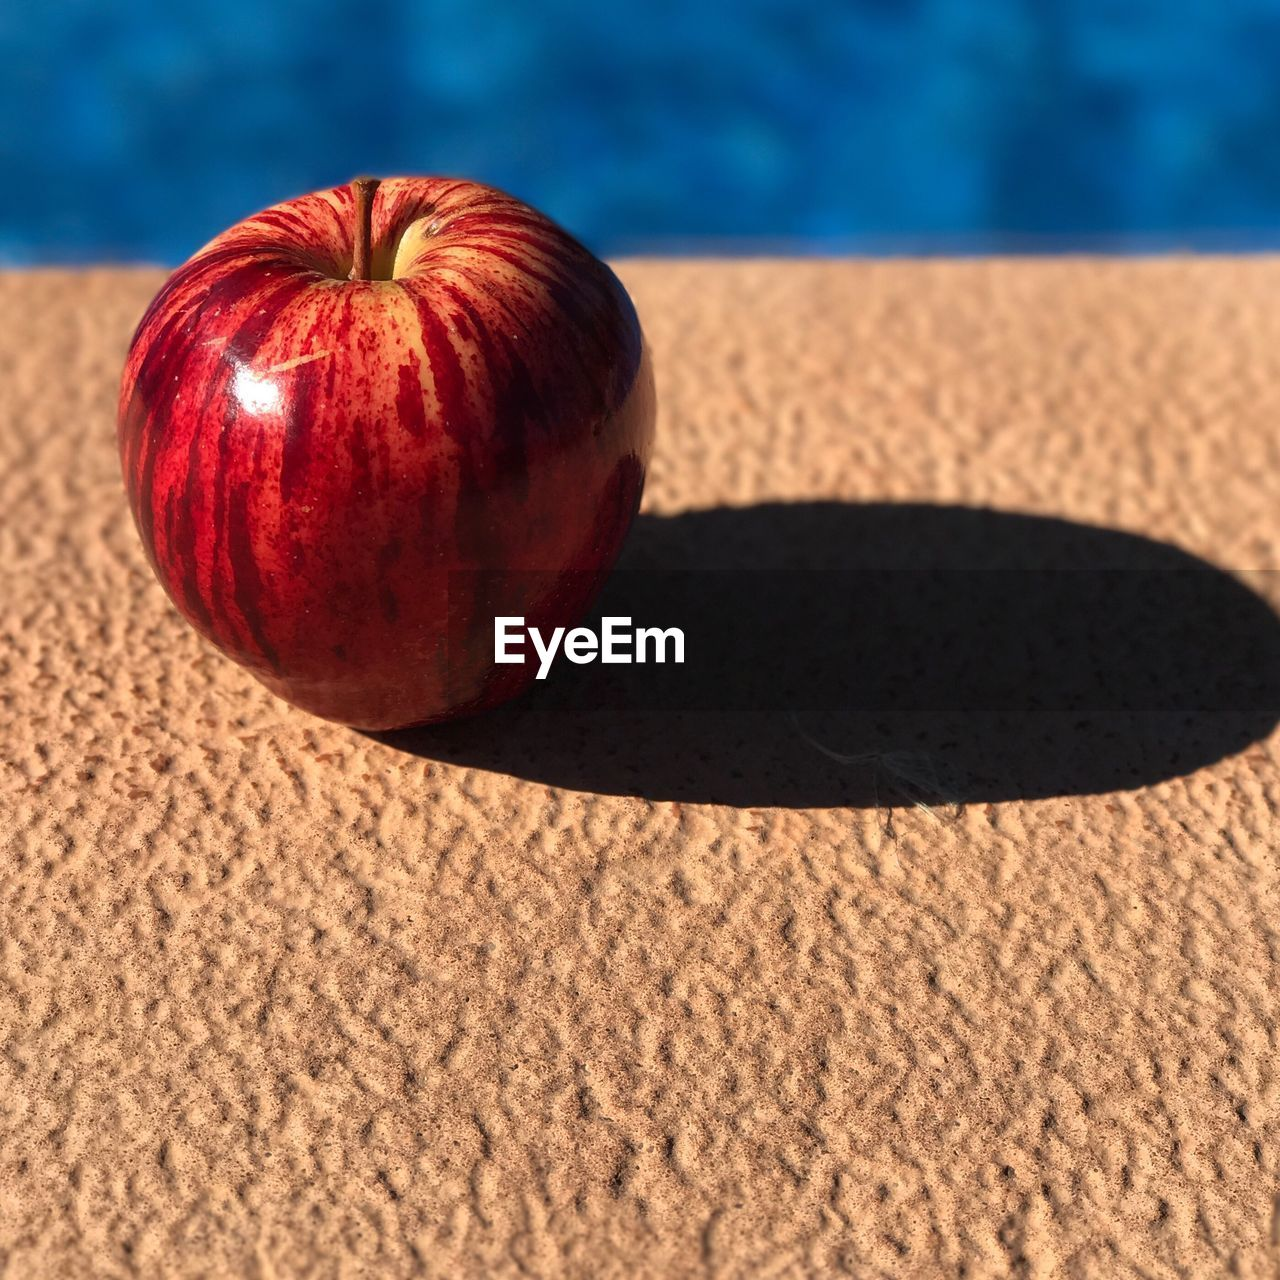 food, wellbeing, food and drink, fruit, healthy eating, freshness, no people, still life, red, indoors, close-up, sunlight, shadow, focus on foreground, table, nature, single object, day, high angle view, carpet - decor, ripe